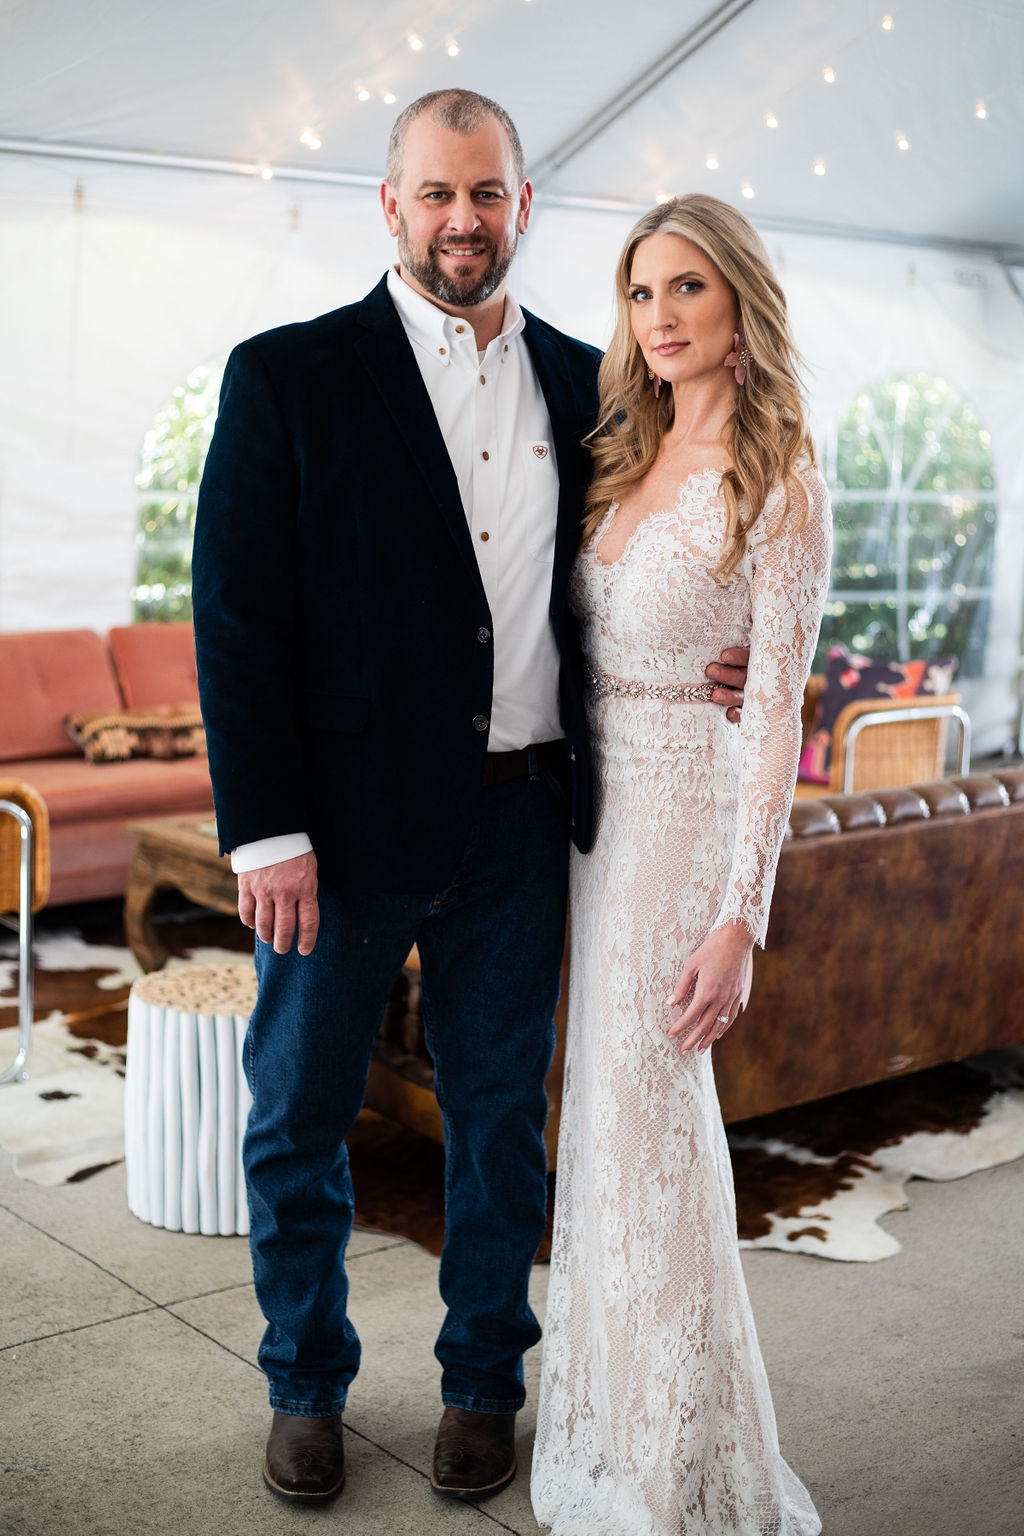 A true Nashville-inspired wedding experience - Working with Abby and her team was truly a wonderful and memorable experience. The song they created for our wedding (a surprise for my husband!) was a huge hit and also gave our guests something very special to commemorate the occasion. If you want a true Nashville-inspired wedding, creating a song with To Have and To Hold is a must-have, added touch! ~Rebekah + Steve, married on 3/23/2019